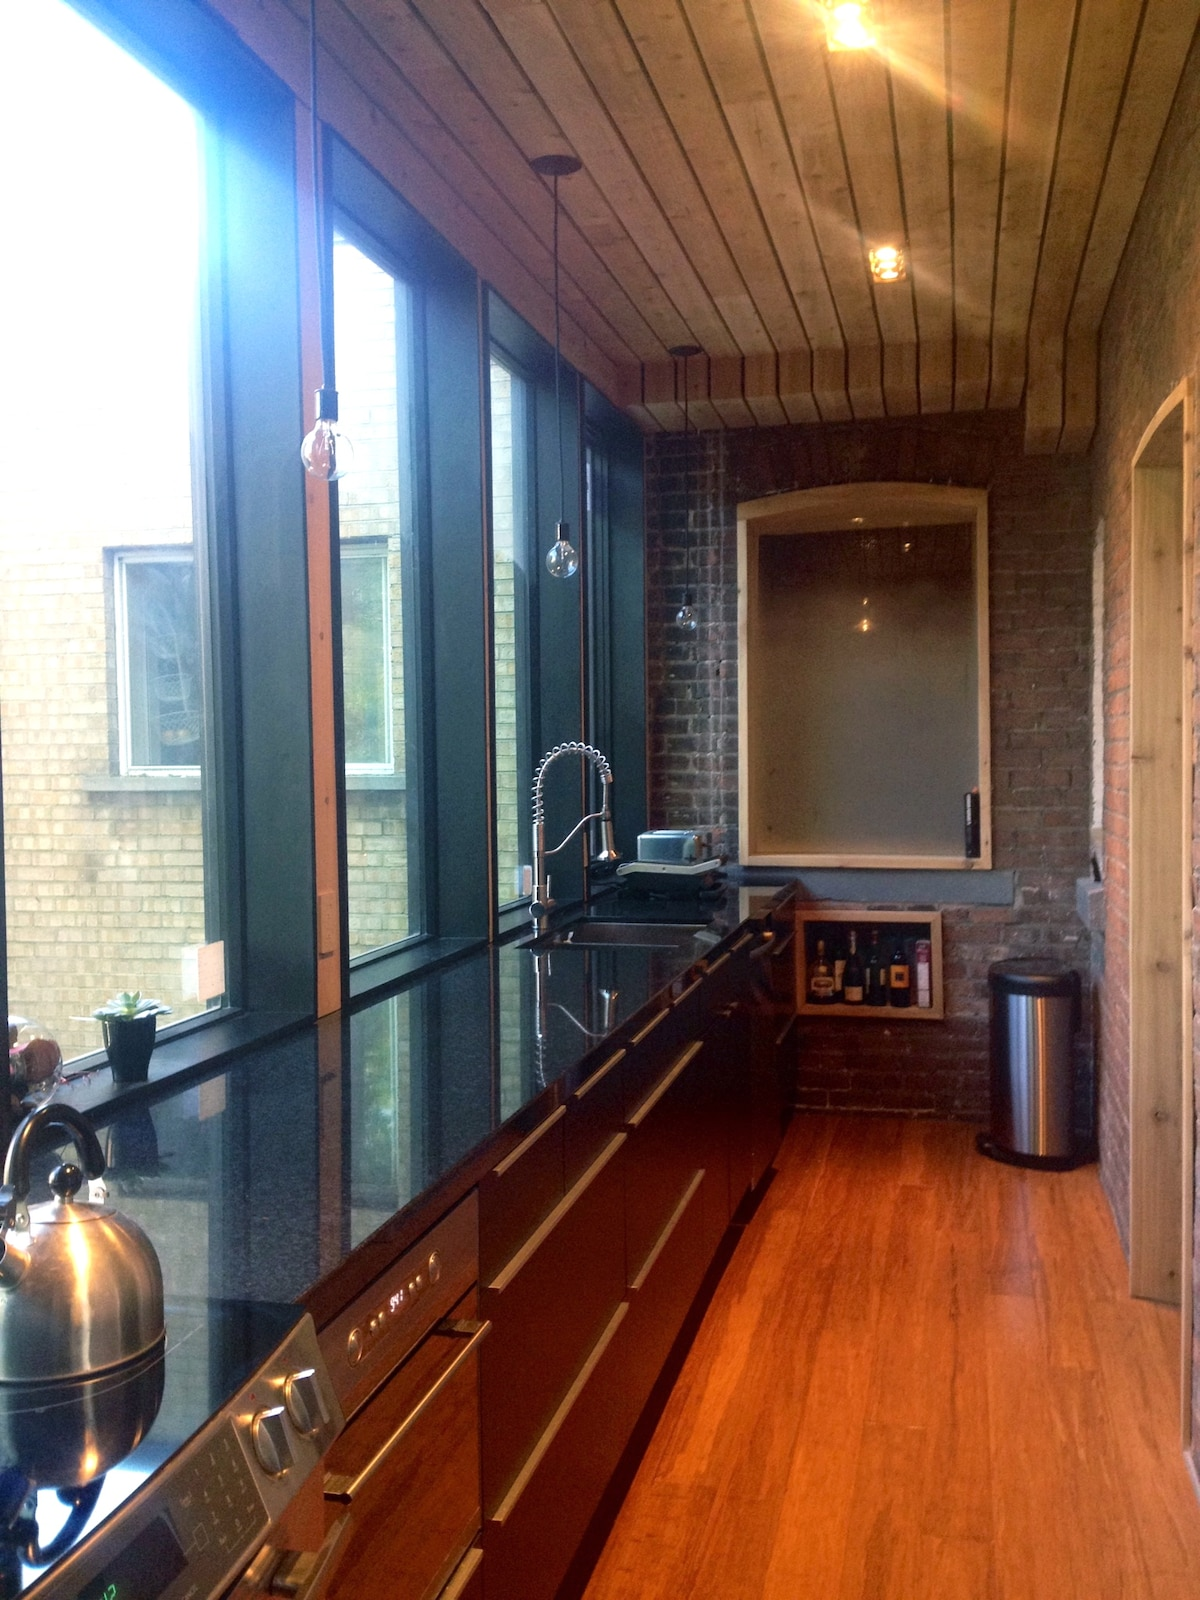 Galley kitchen, with new appliances and dishwasher